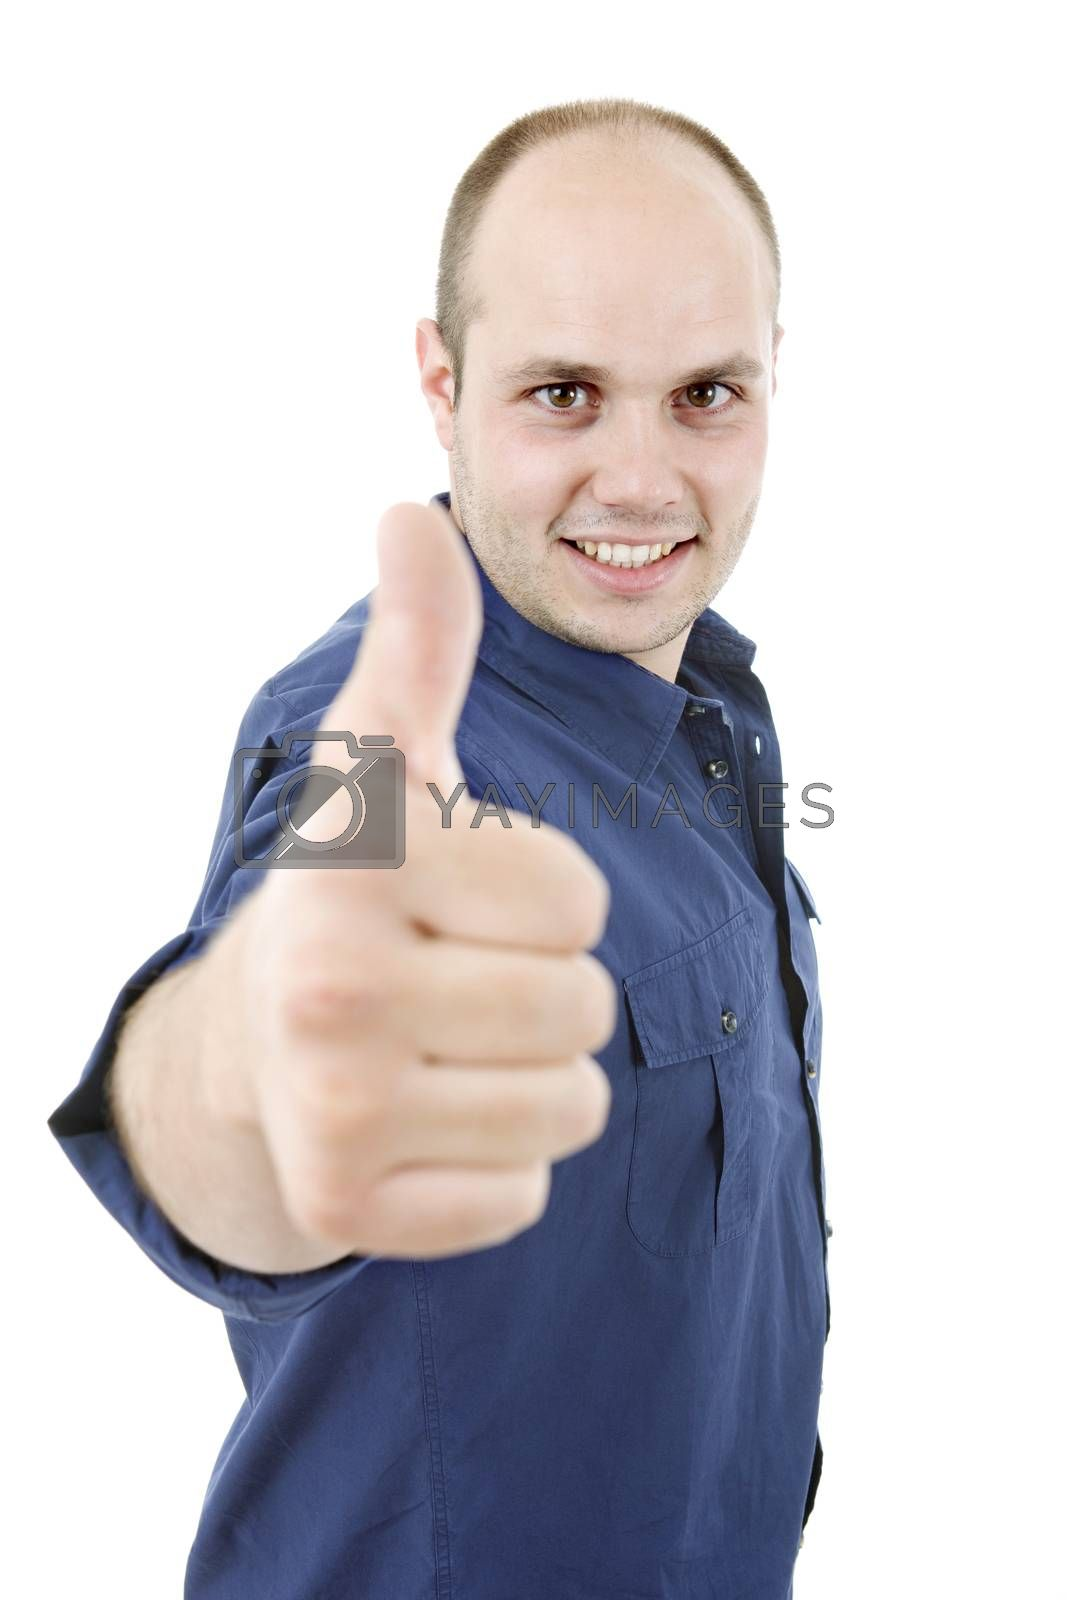 Royalty free image of thumb up by zittto